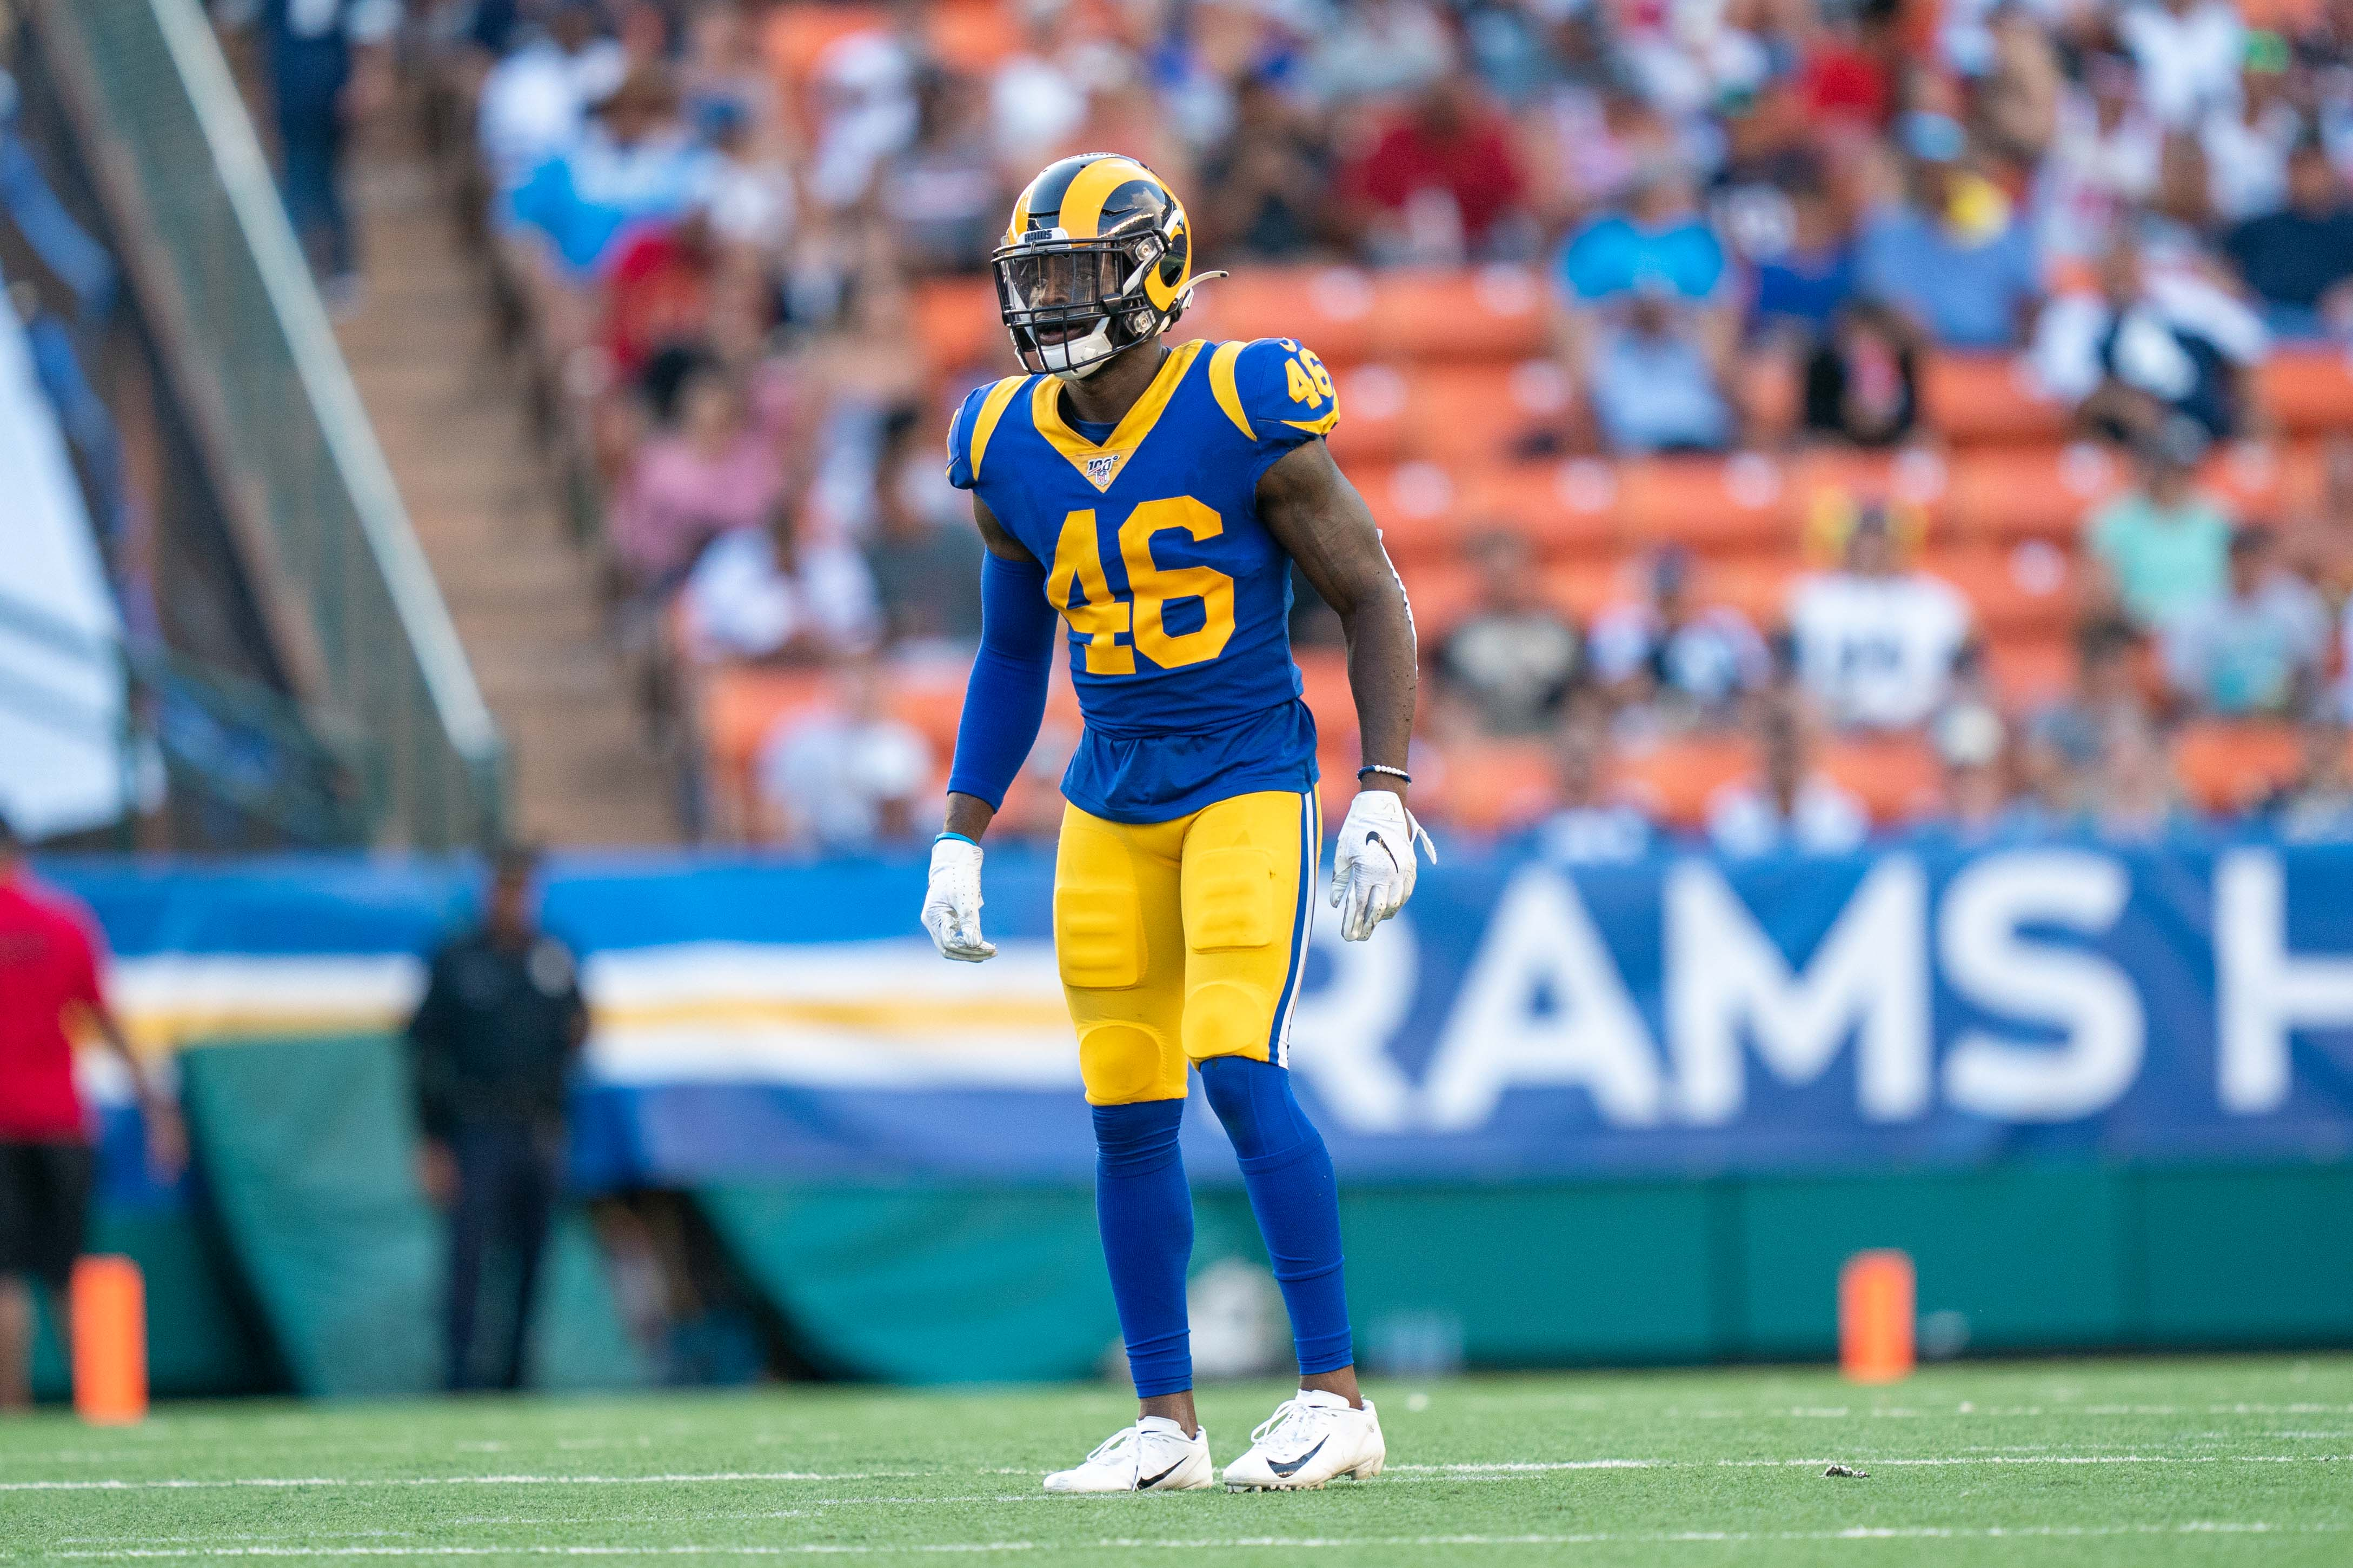 Los Angeles Rams S Nick Scott during the third quarter against the Dallas Cowboys in the Rams' second game of the preseason, Aug. 17, 2019.